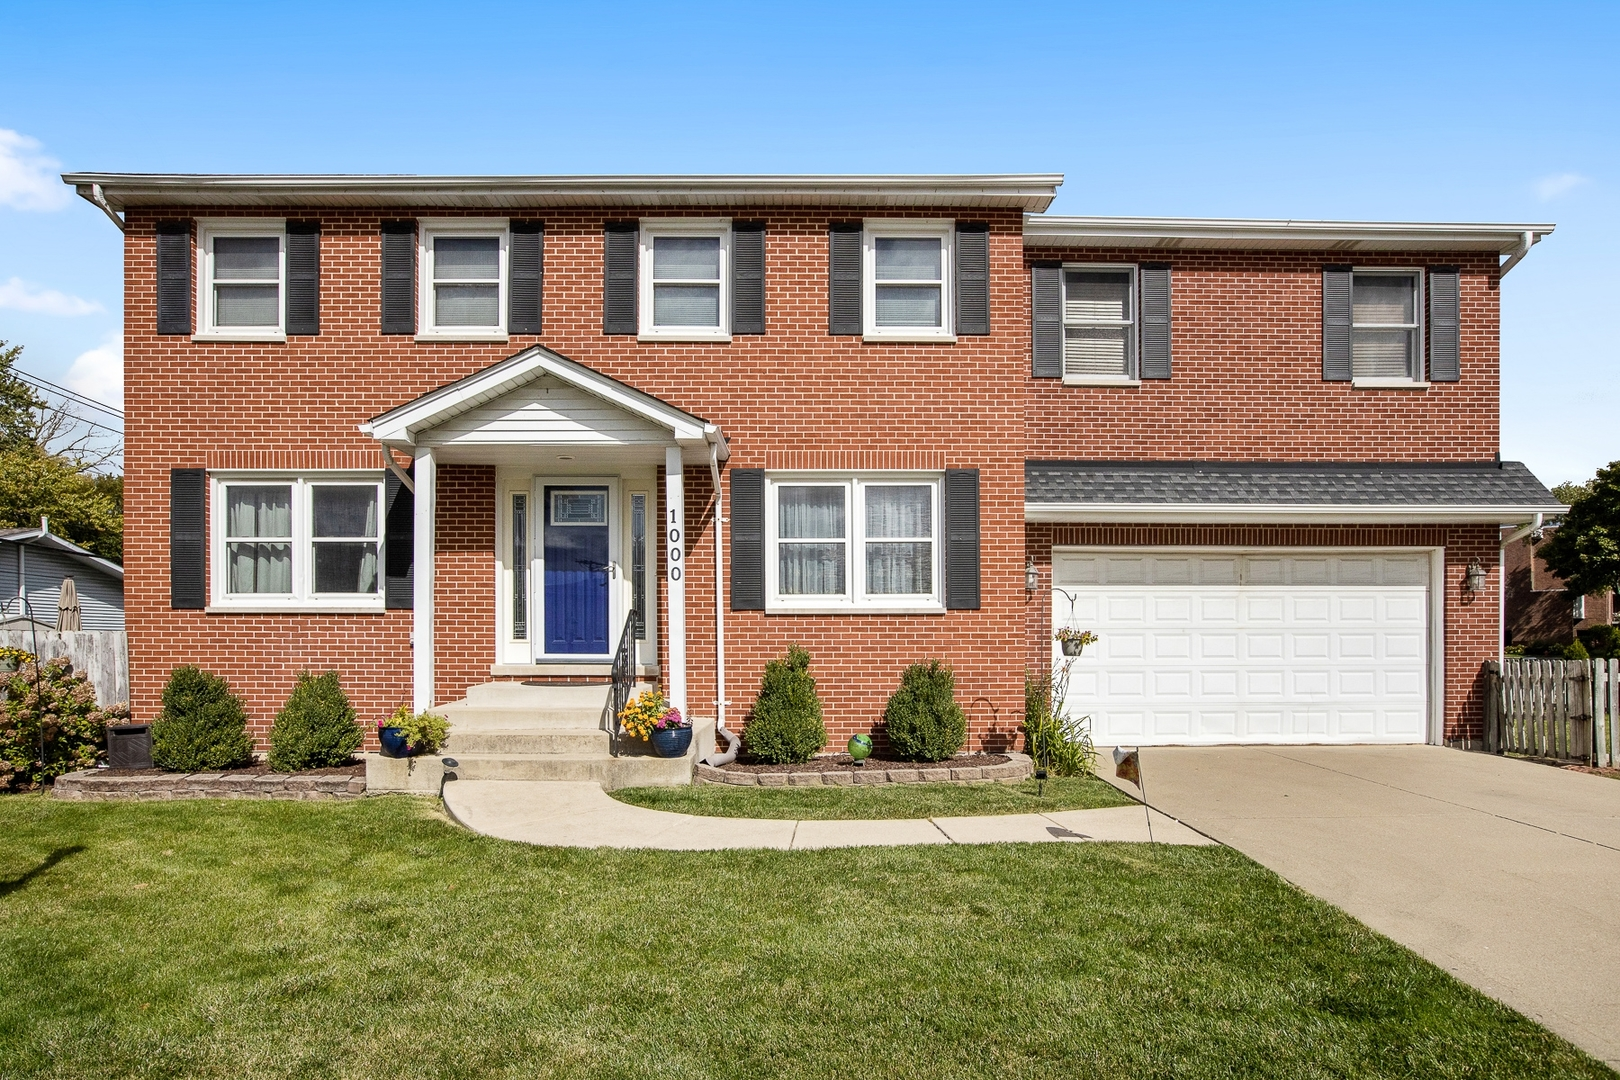 Photo for 1000 Saylor Street, Downers Grove, IL 60516 (MLS # 10883879)